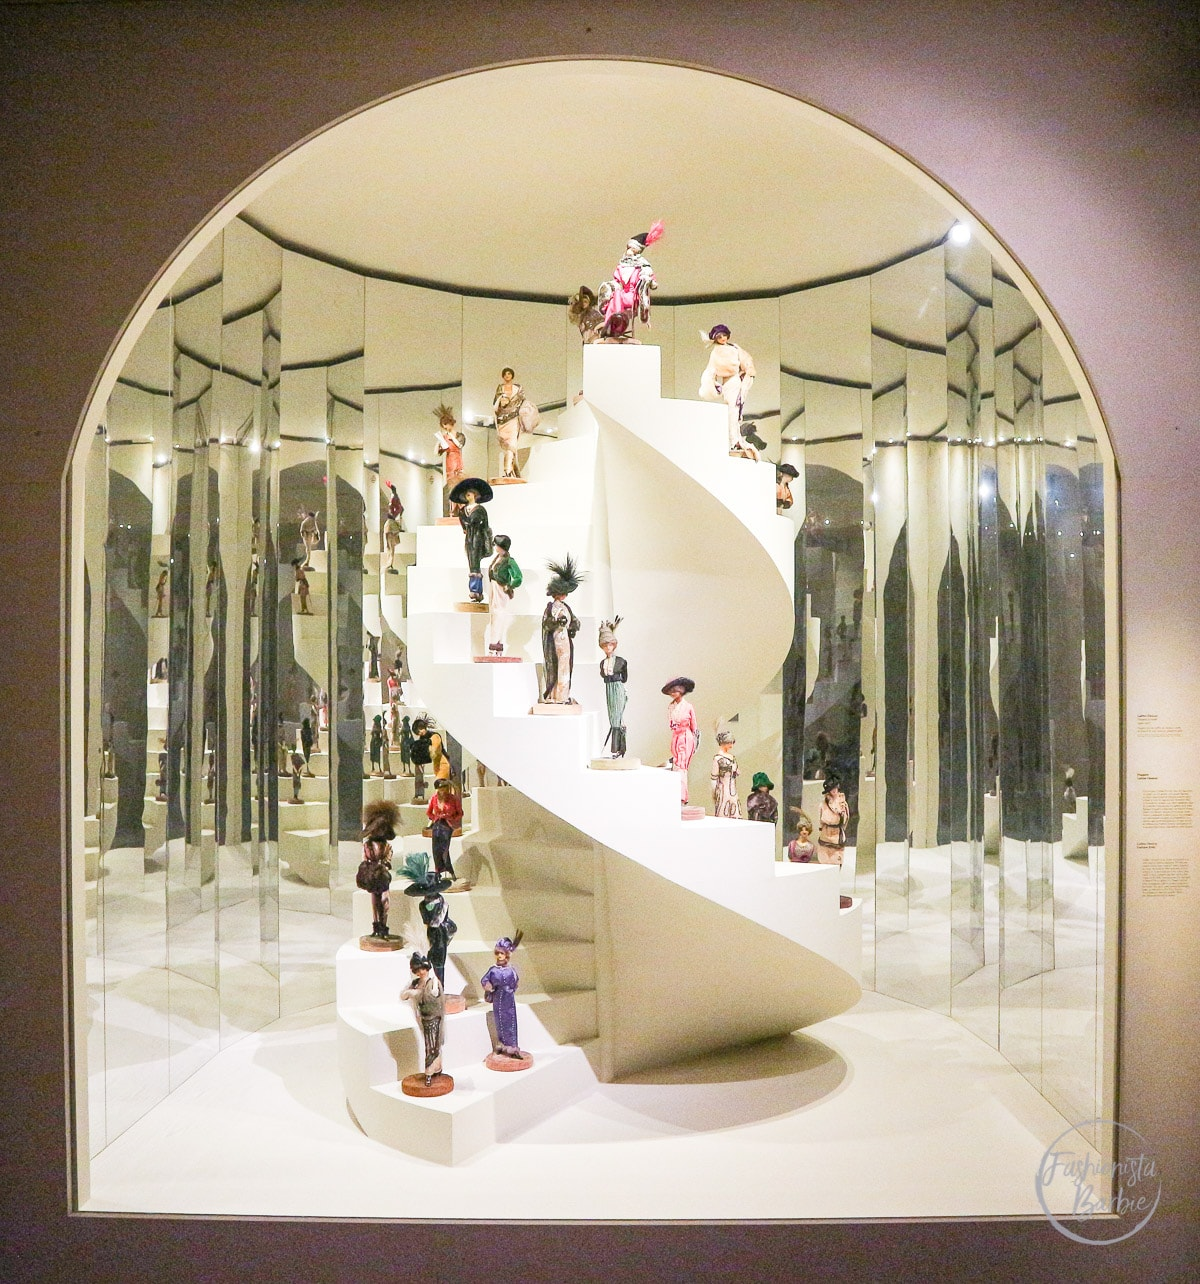 Fashion Forward, Fashion Exhibition, Fashion, Les Arts Decoratifs, Paris, Fashionista Barbie, Fashion Bloggers, Fashion Blogger, Chanel, Dior, Yves Saint Laurent, Vionnet